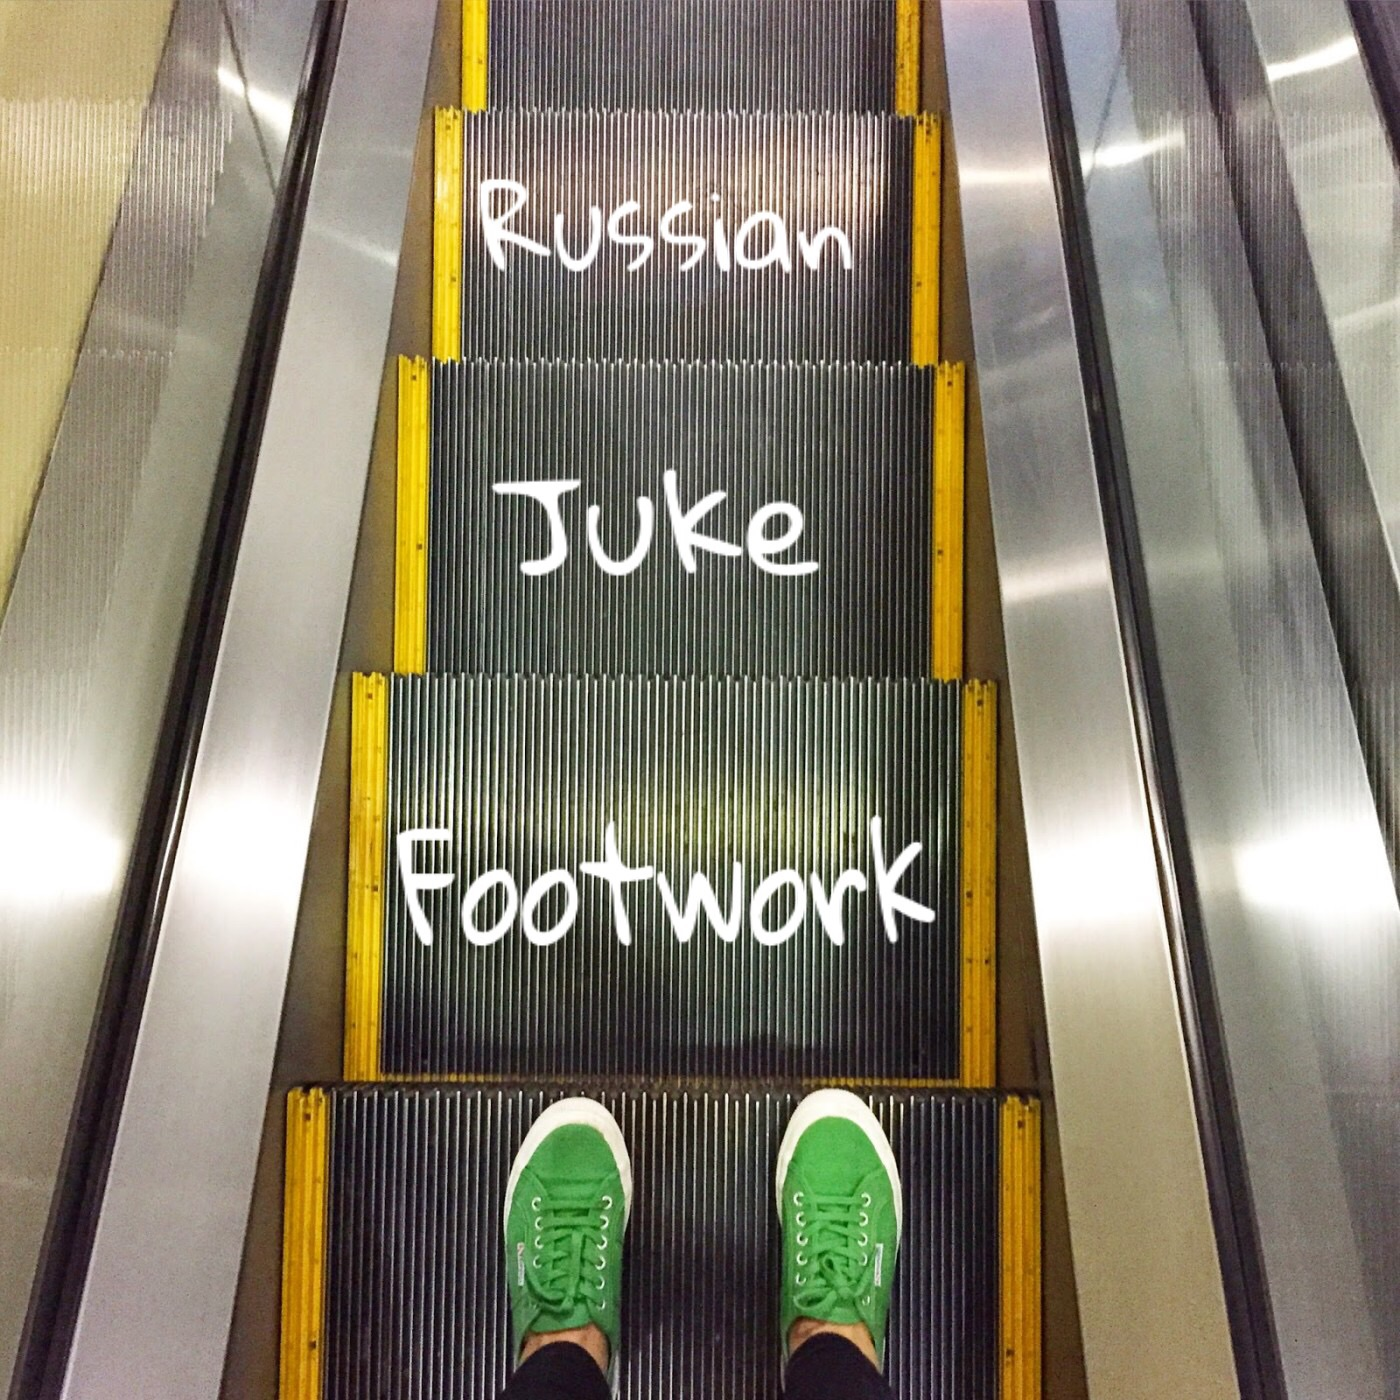 Russian Juke Footwork